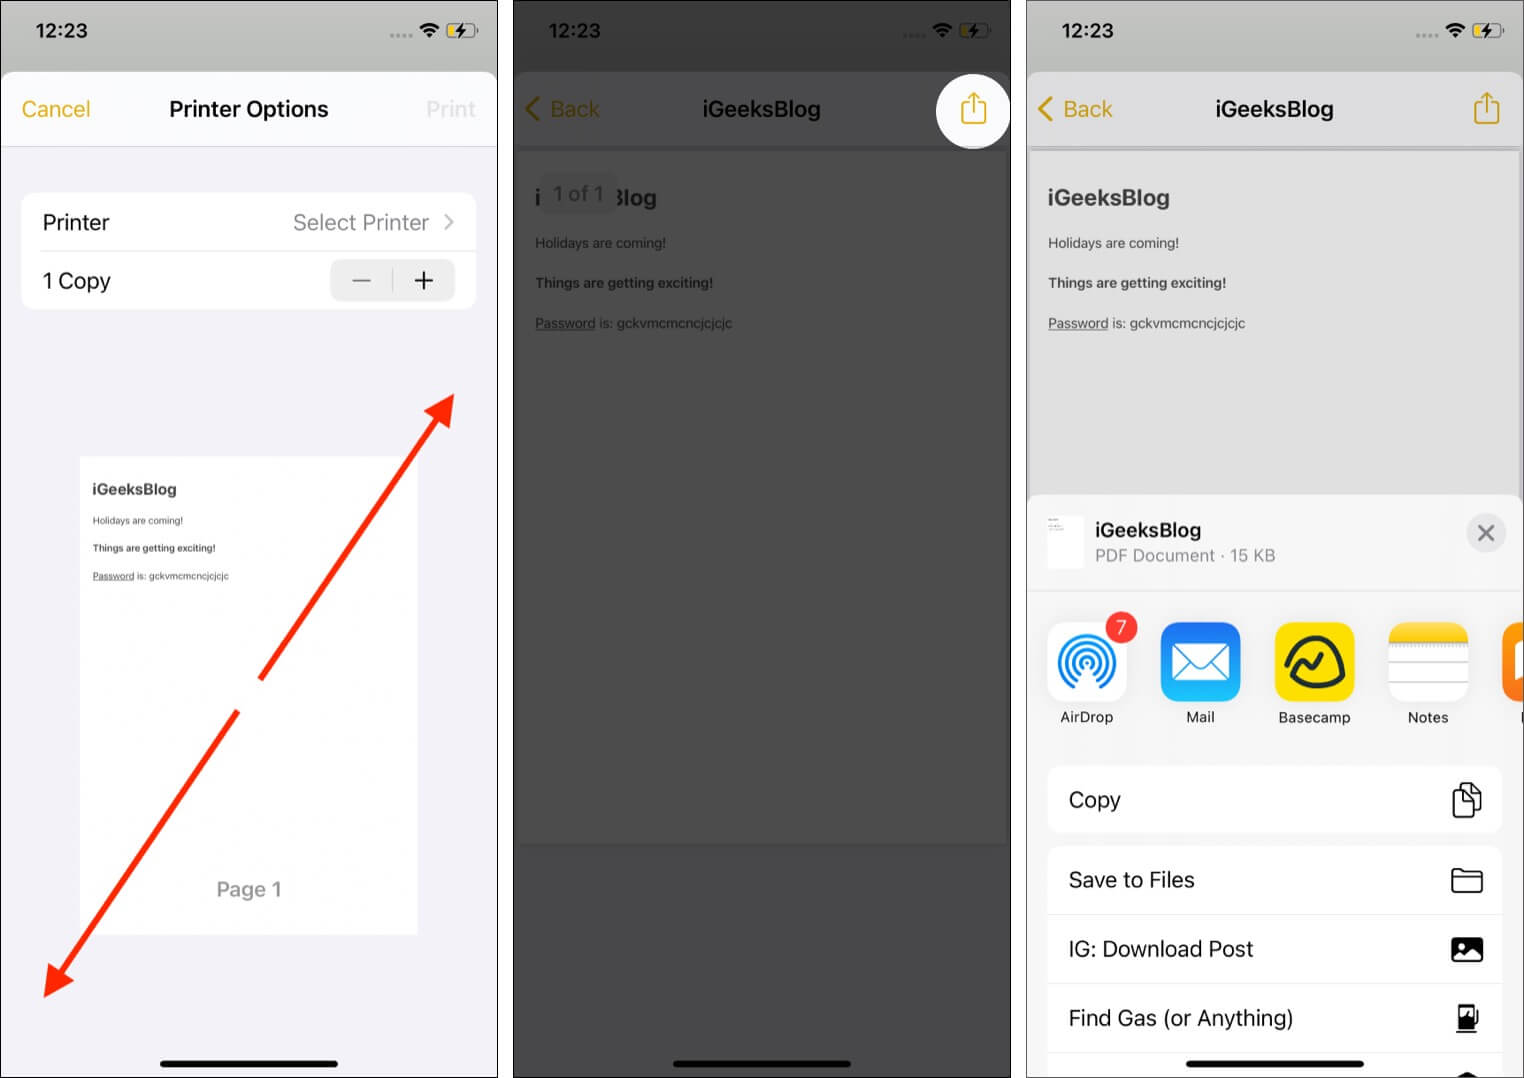 Pinch out thumbnail and tap Share Icon to save or send note as PDF